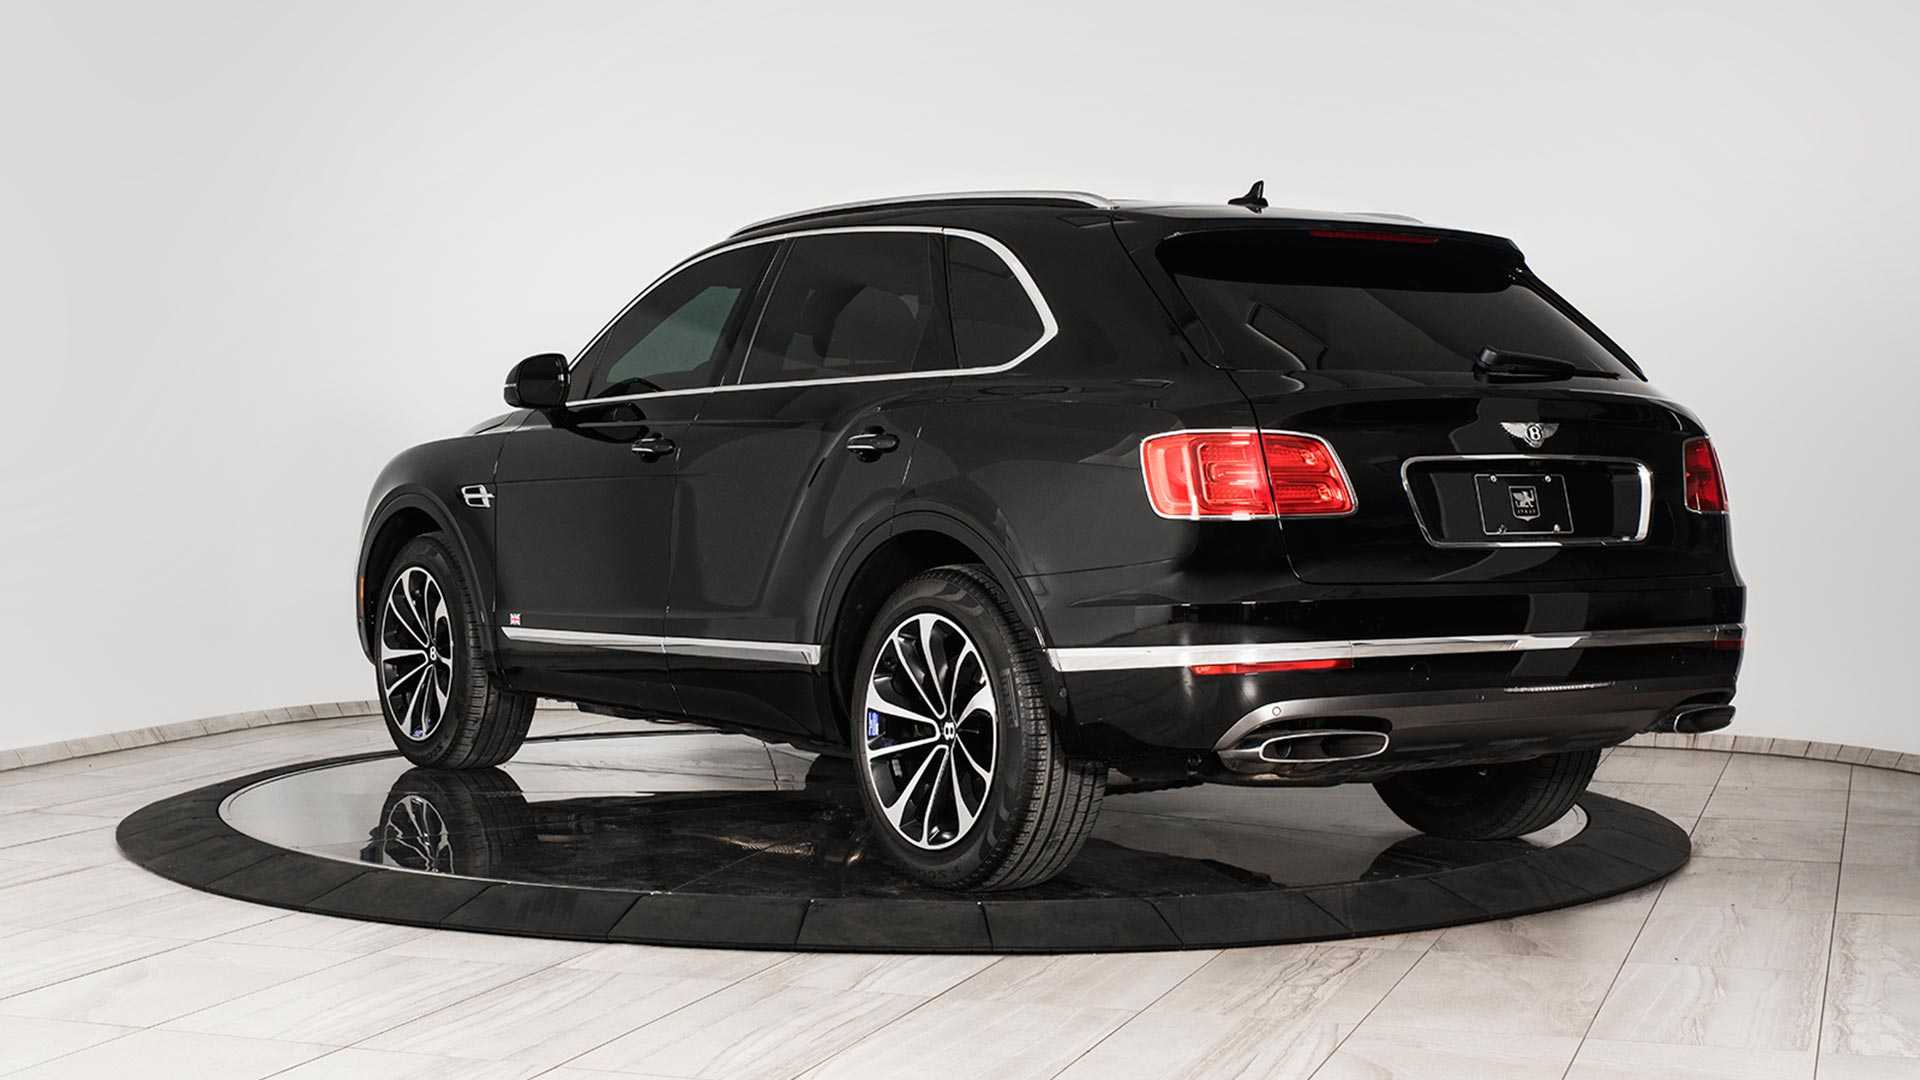 armored-bentley-bentayga-by-inkas-9